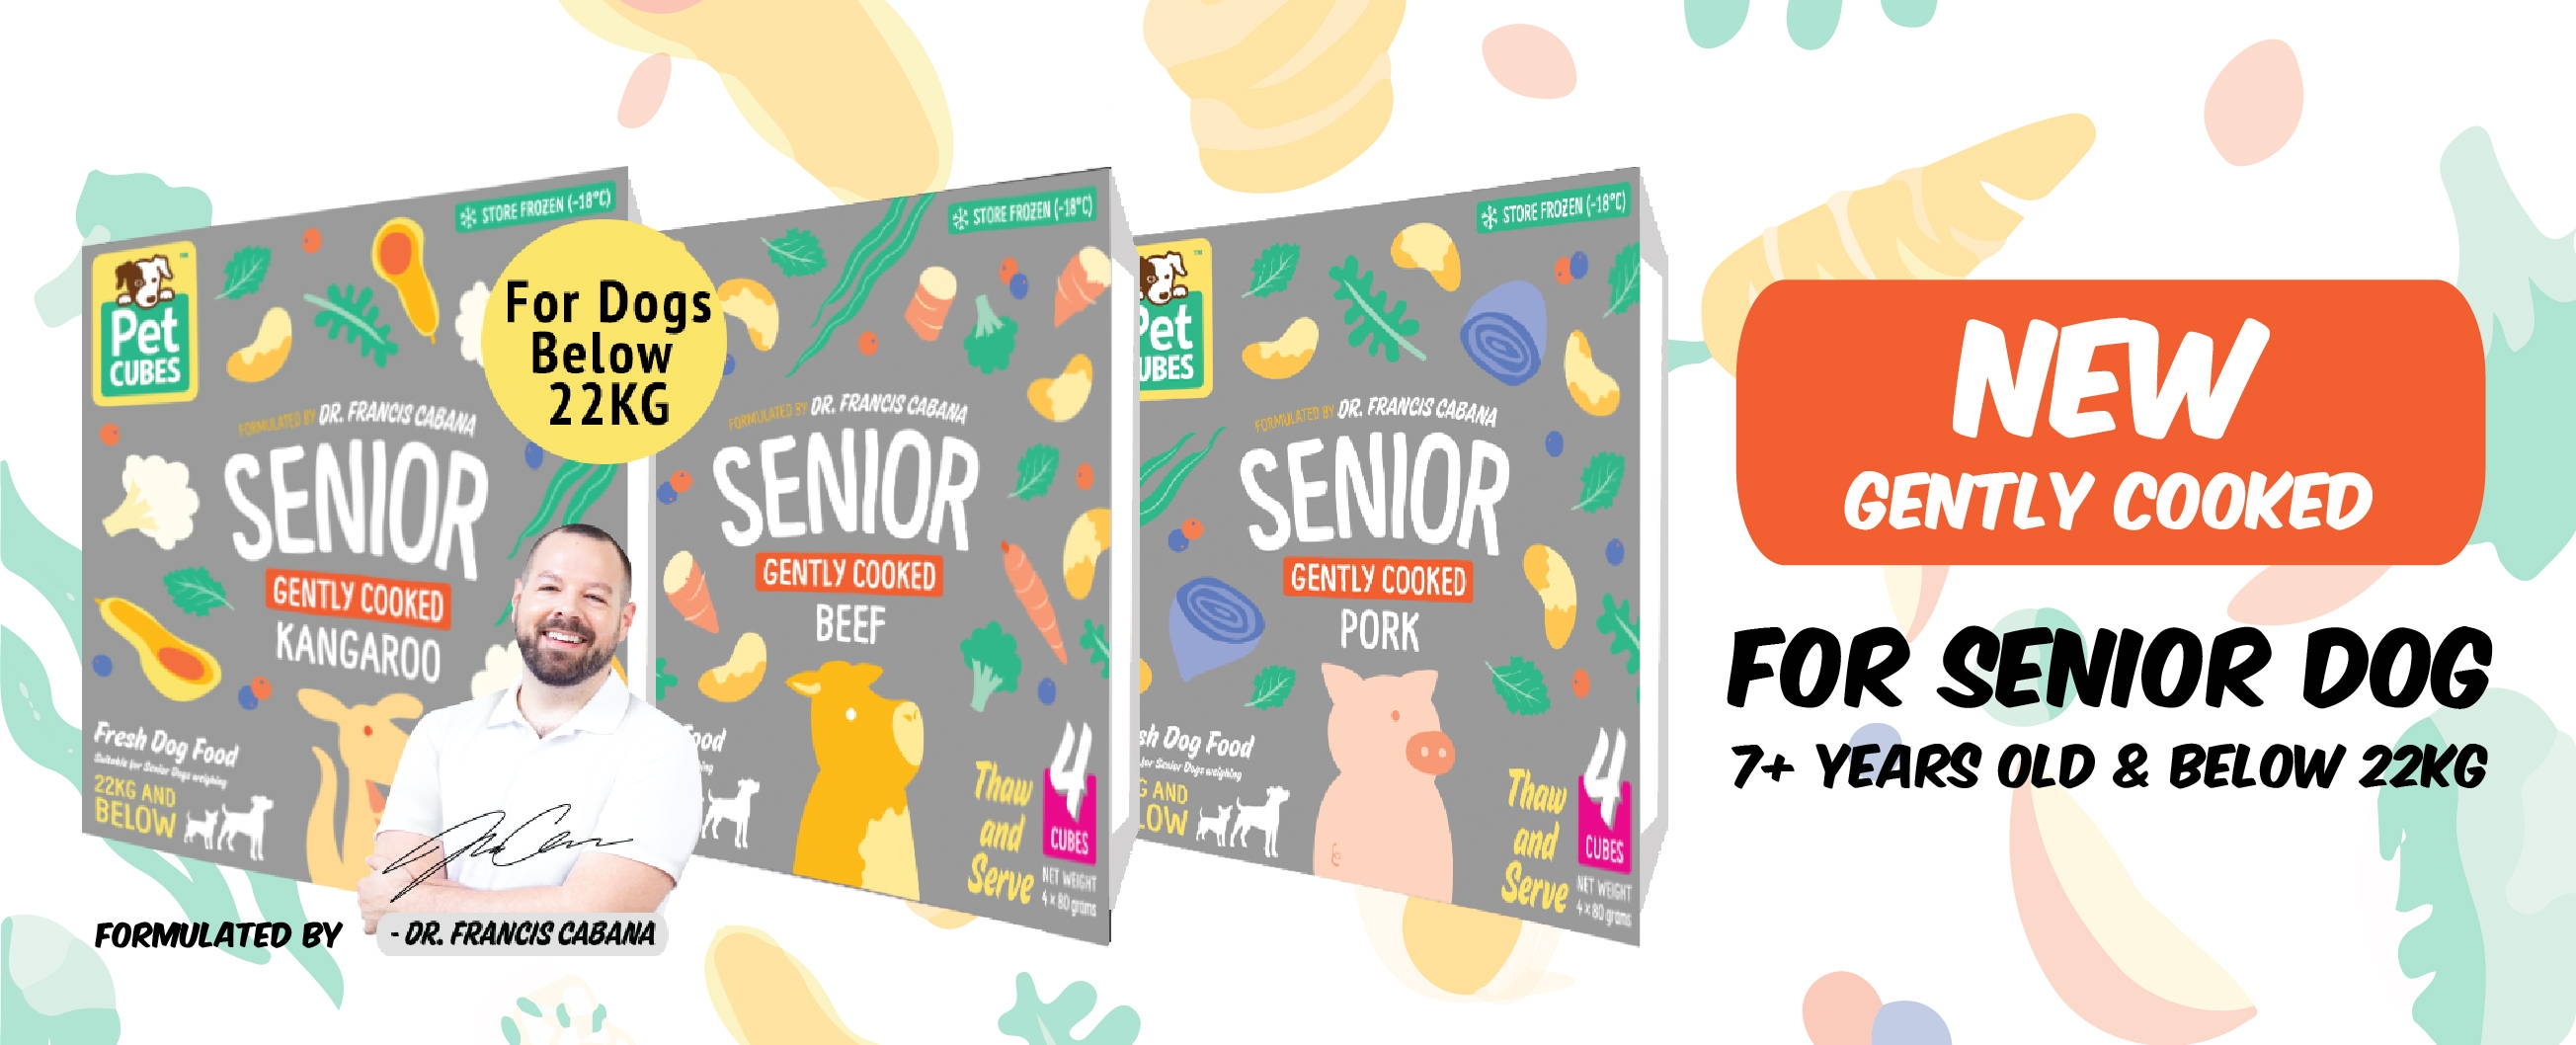 New Pet Cubes Gently Cooked Senior frozen dog food